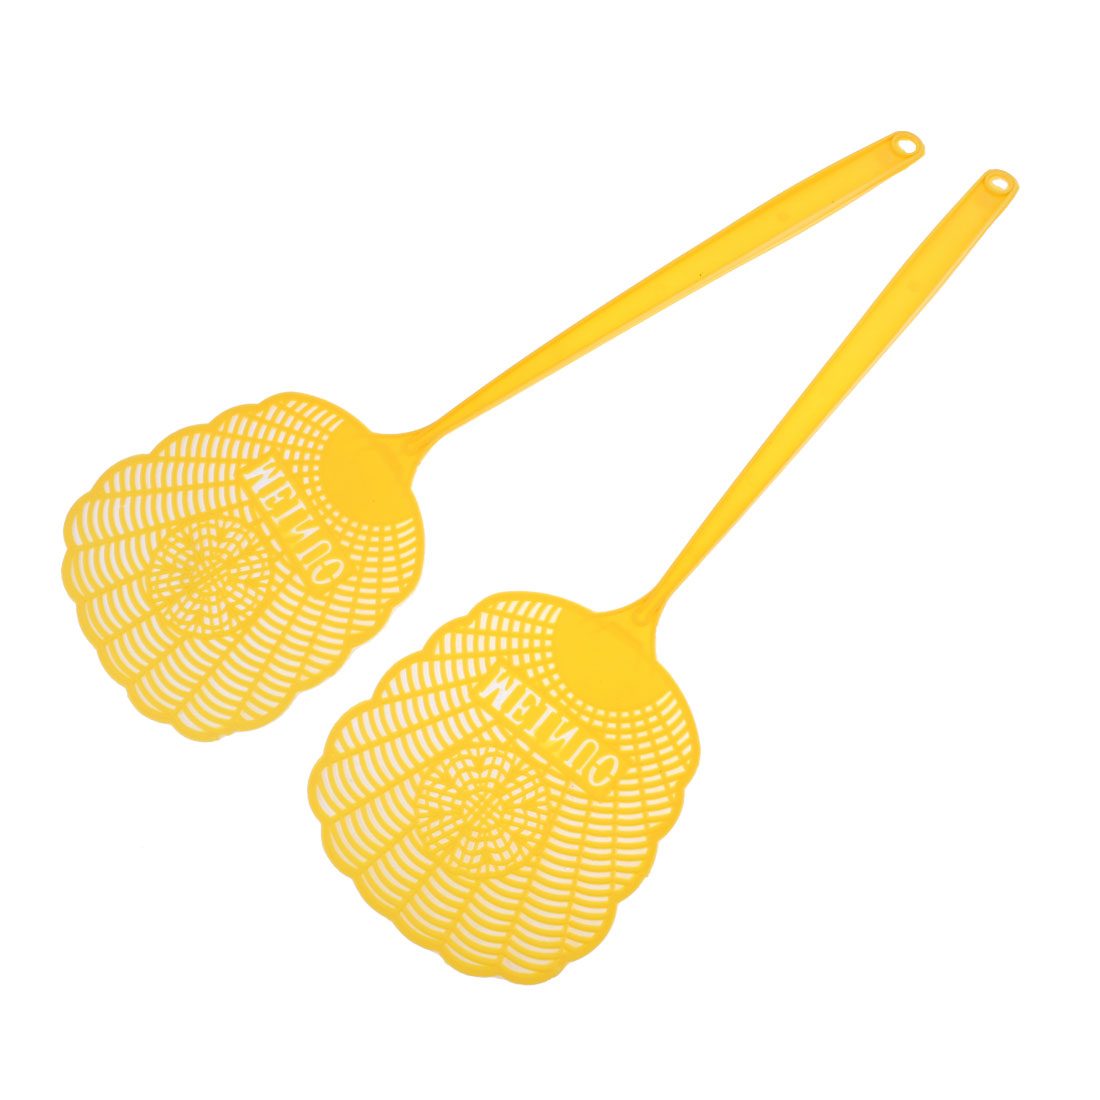 2Pcs Household Plastic Mosquito Cockroach Insects Fly Swatter 47cm Orange